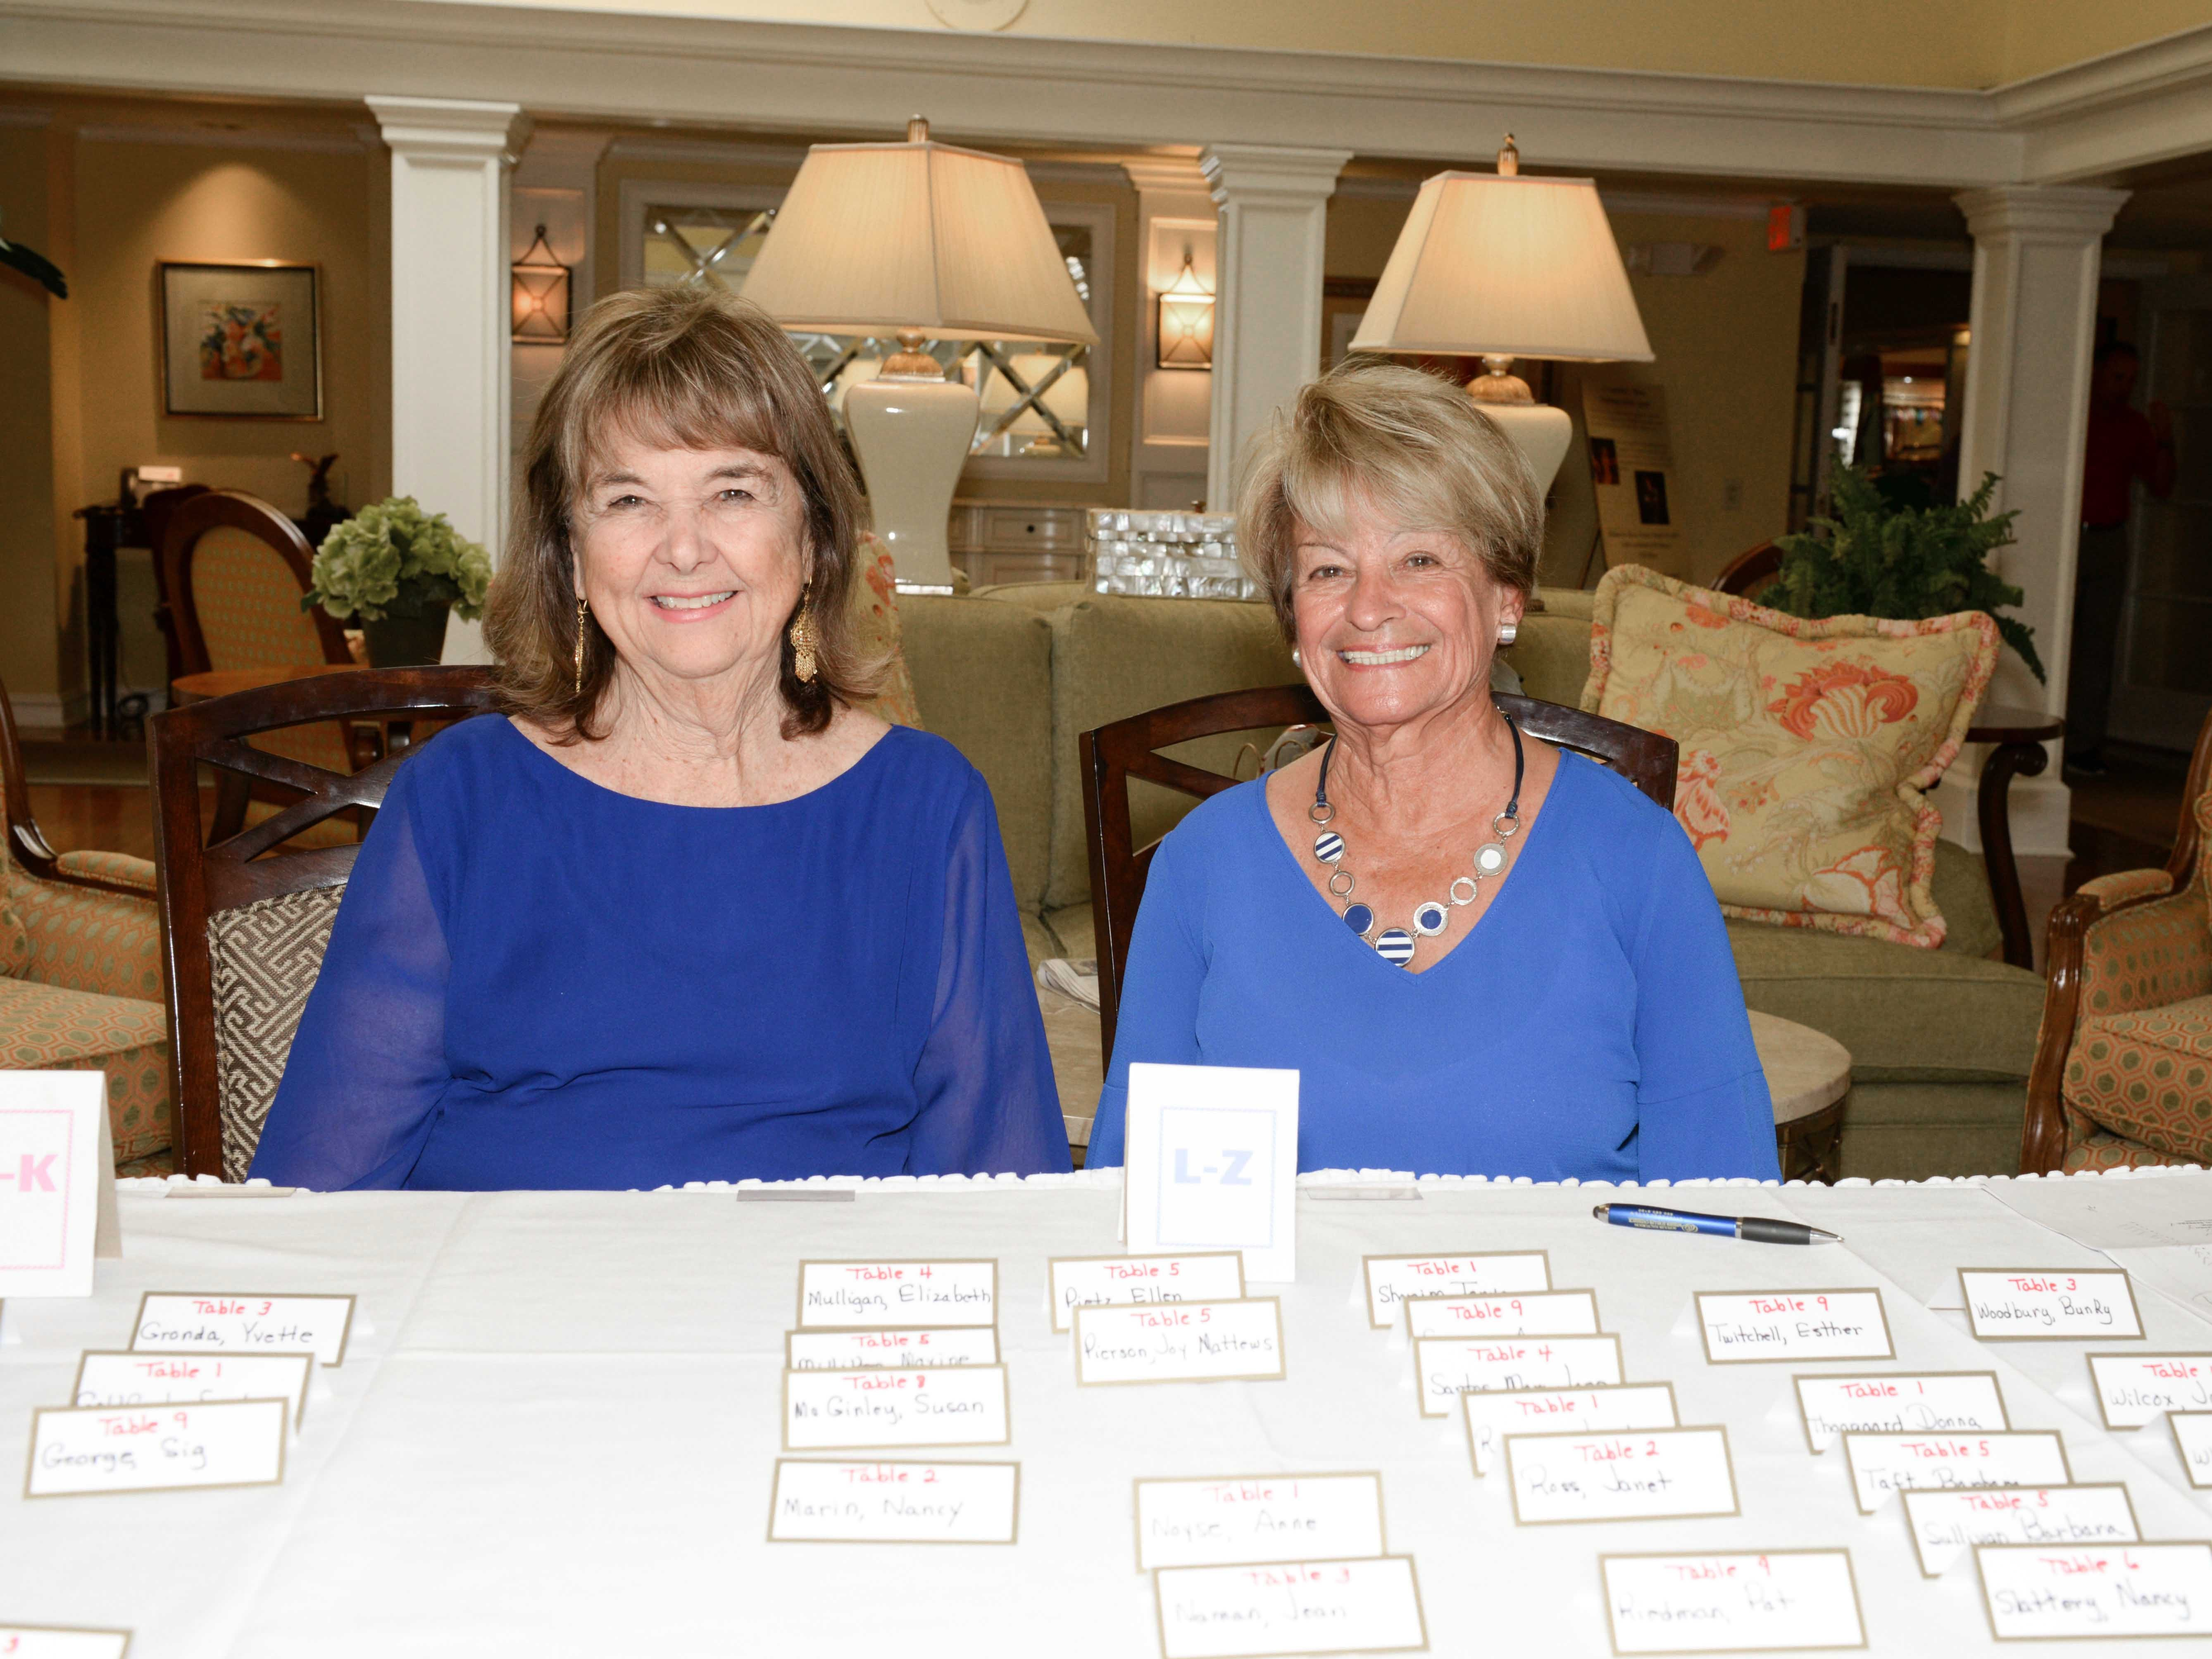 Nancy Erwin, left, and Rosemary Villano at the registration table at the Sapphire Anniversary party of the American Association of University Women Stuart Branch.